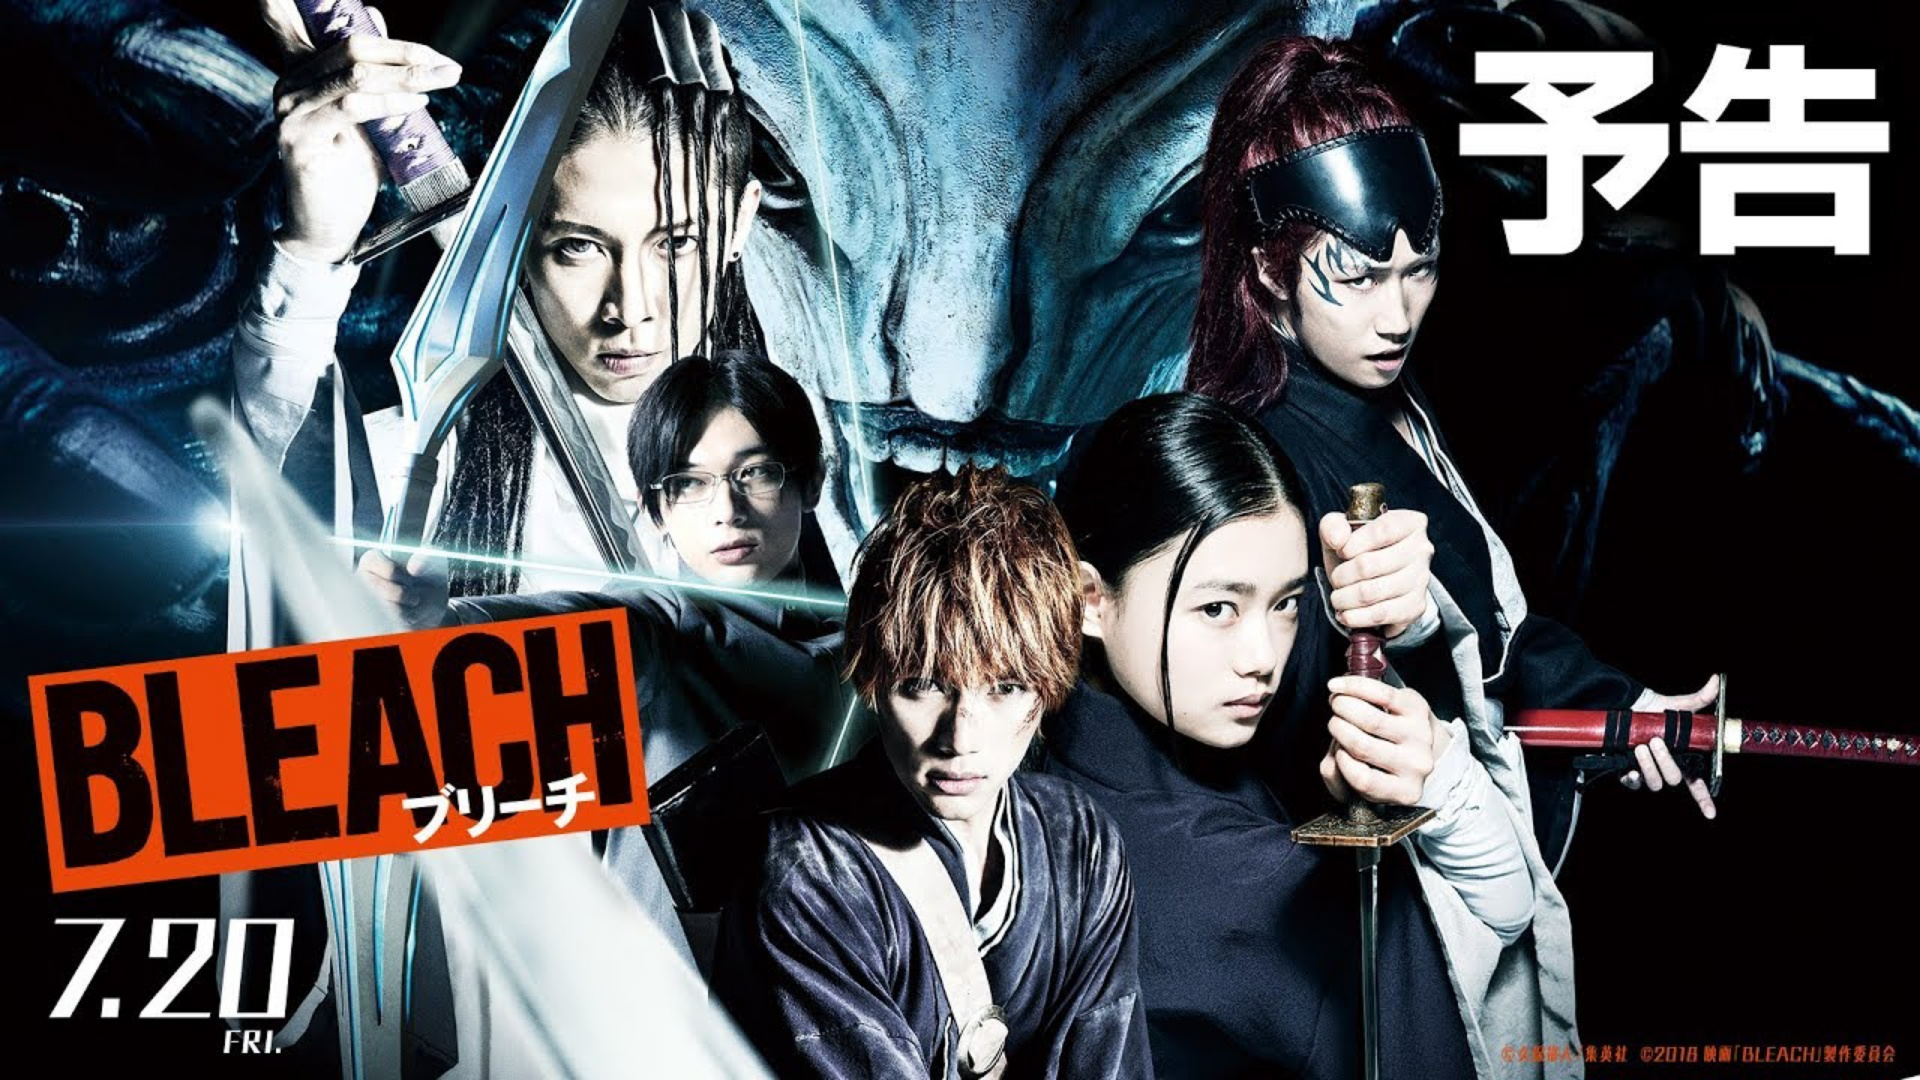 Bleach - Live Action |WEB-DL | Lat/Cast/Jap+Sub | MKV-1080p | x264 Bleach